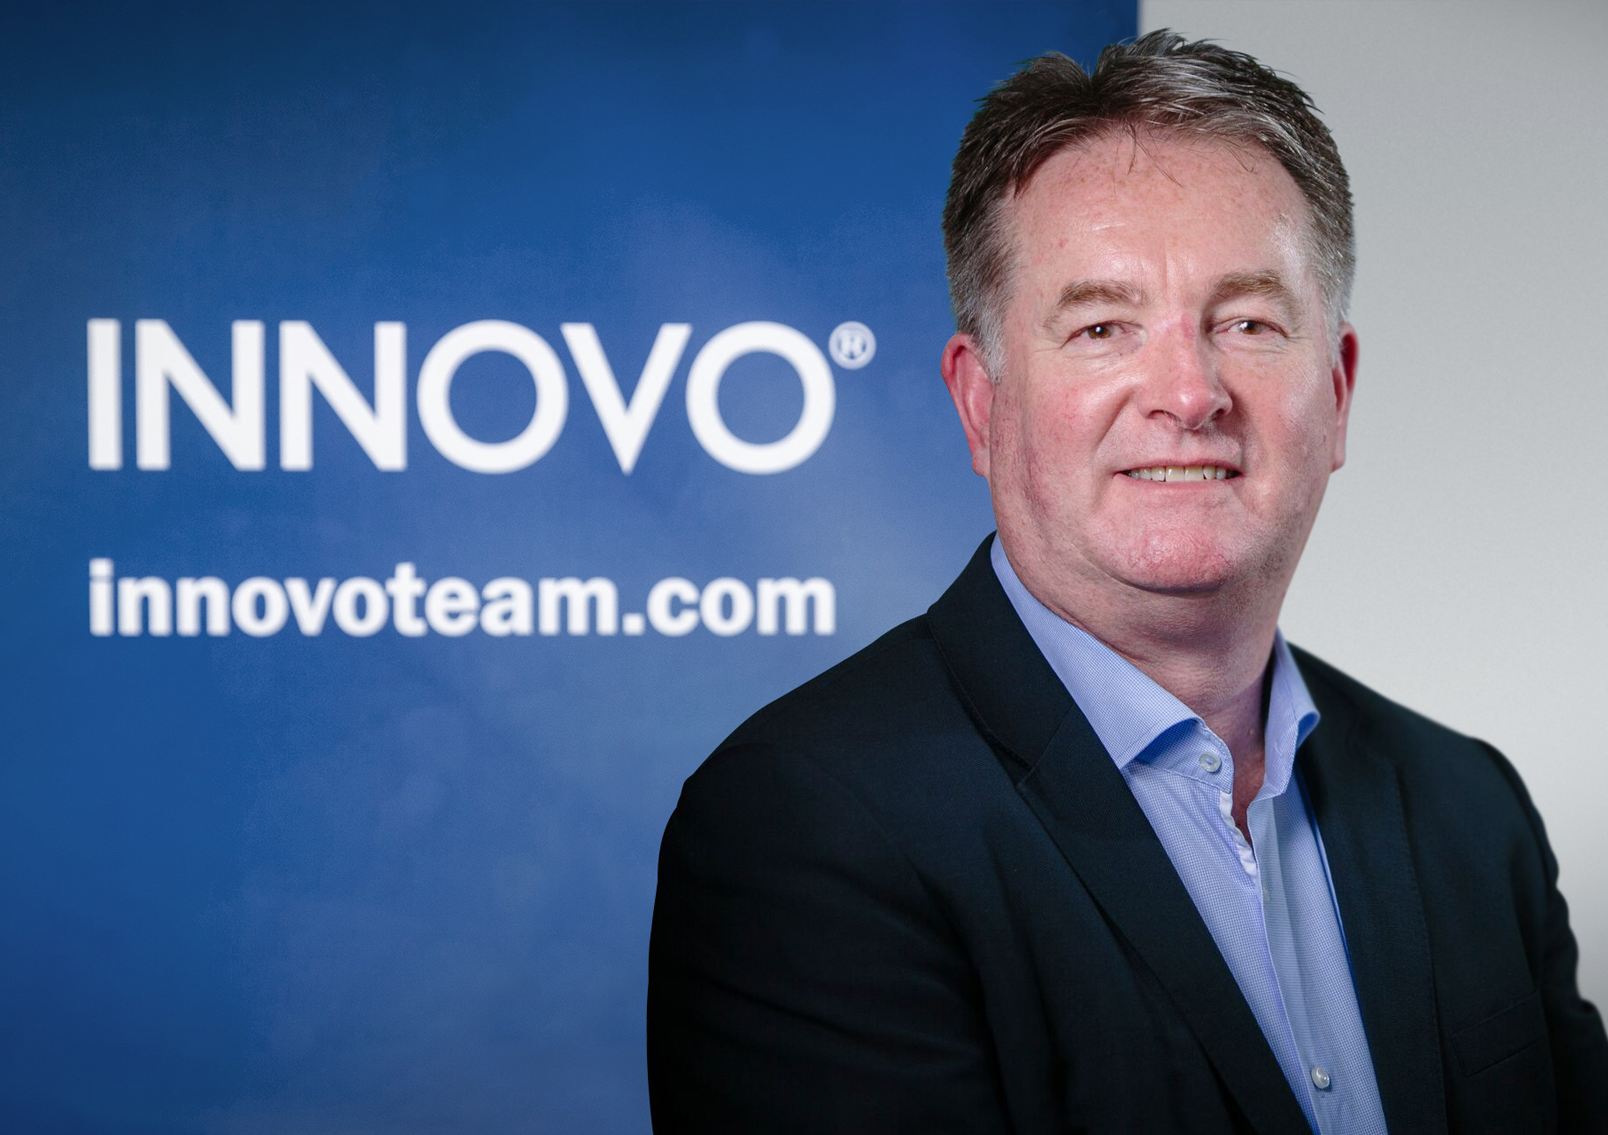 Innovo appoints Corporate Business Development Director